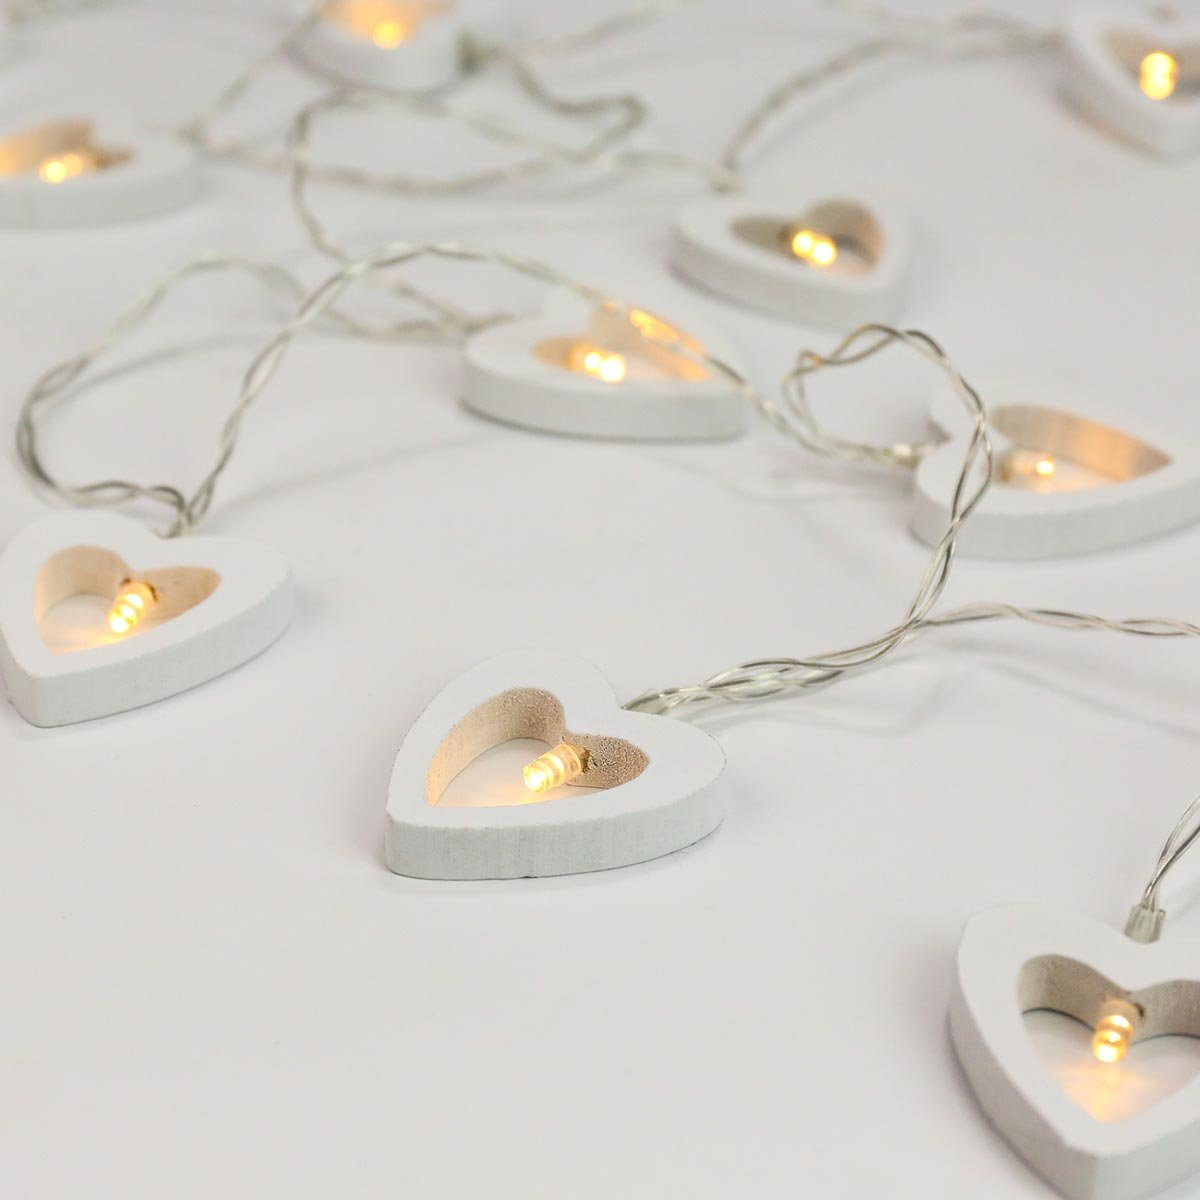 Festive Lights Wooden Heart String Lights - Battery Operated - Timer - 10 Warm White LEDs HL003